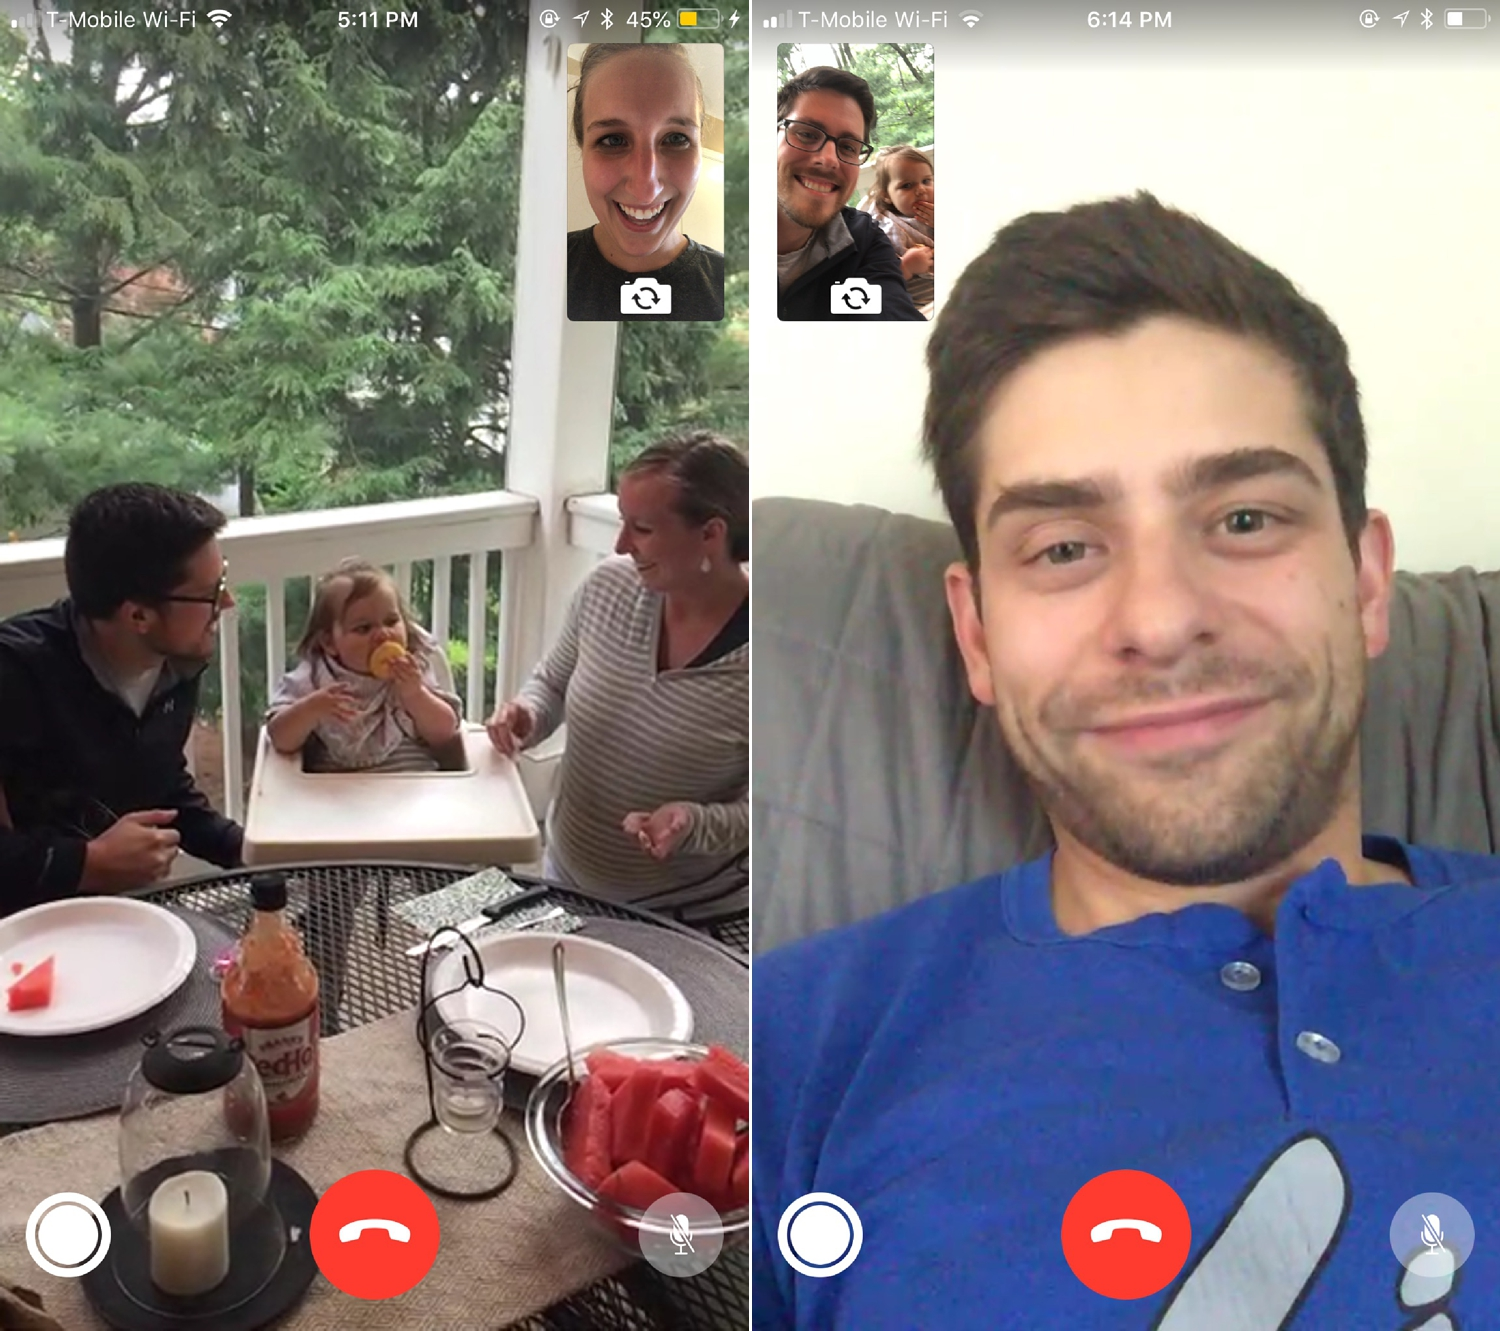 FaceTiming with the out-of-towners!